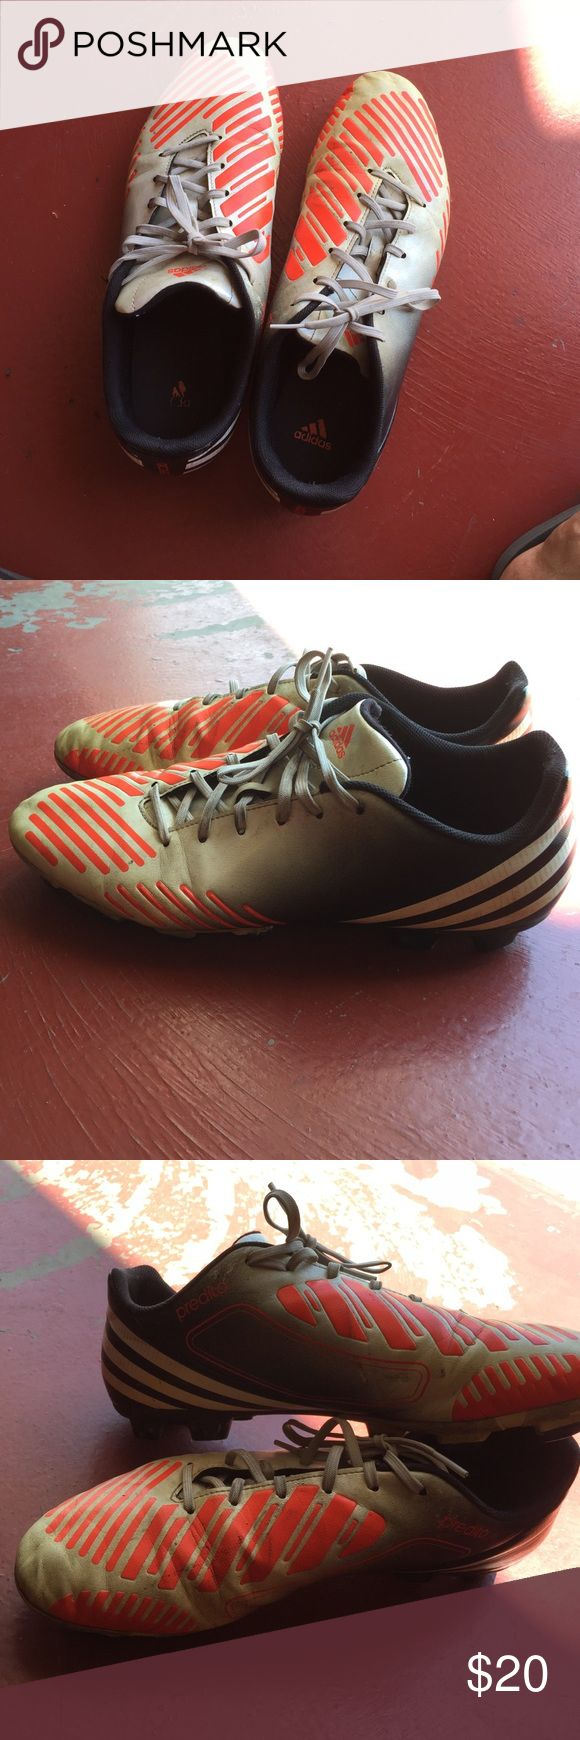 Adidas Predito Cleats Men's Black, Grey, and white(ish) cleats from adidas. It has been very used. I played with these for about two years. Still in good condition. I will clean them to the best of my ability. Size 11.5 in men's Adidas Shoes Athletic Shoes